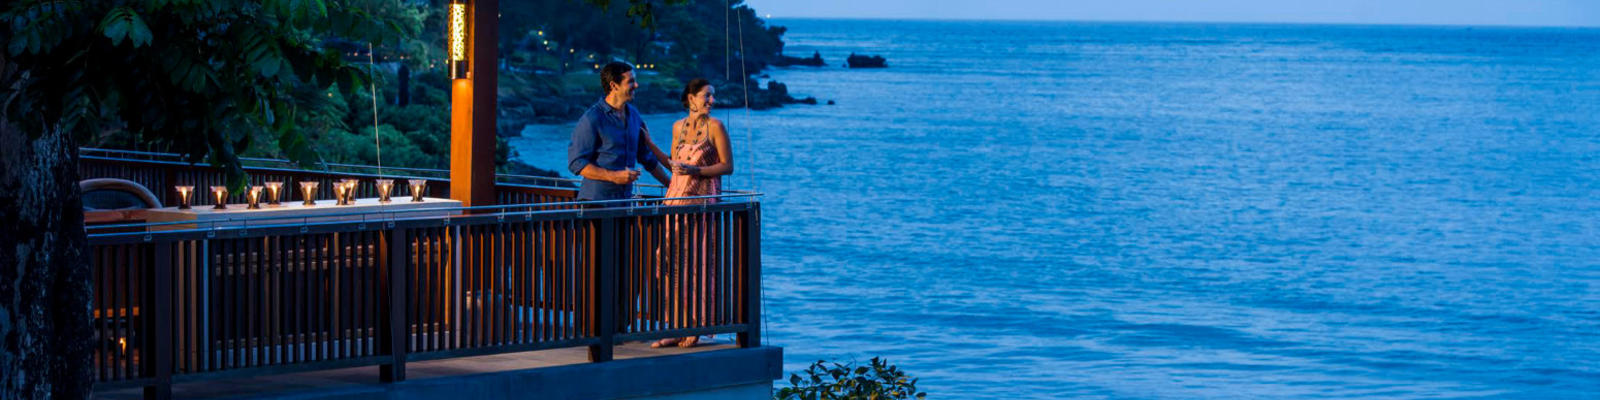 Two people standing on a balcony with drinks overlooking the ocean